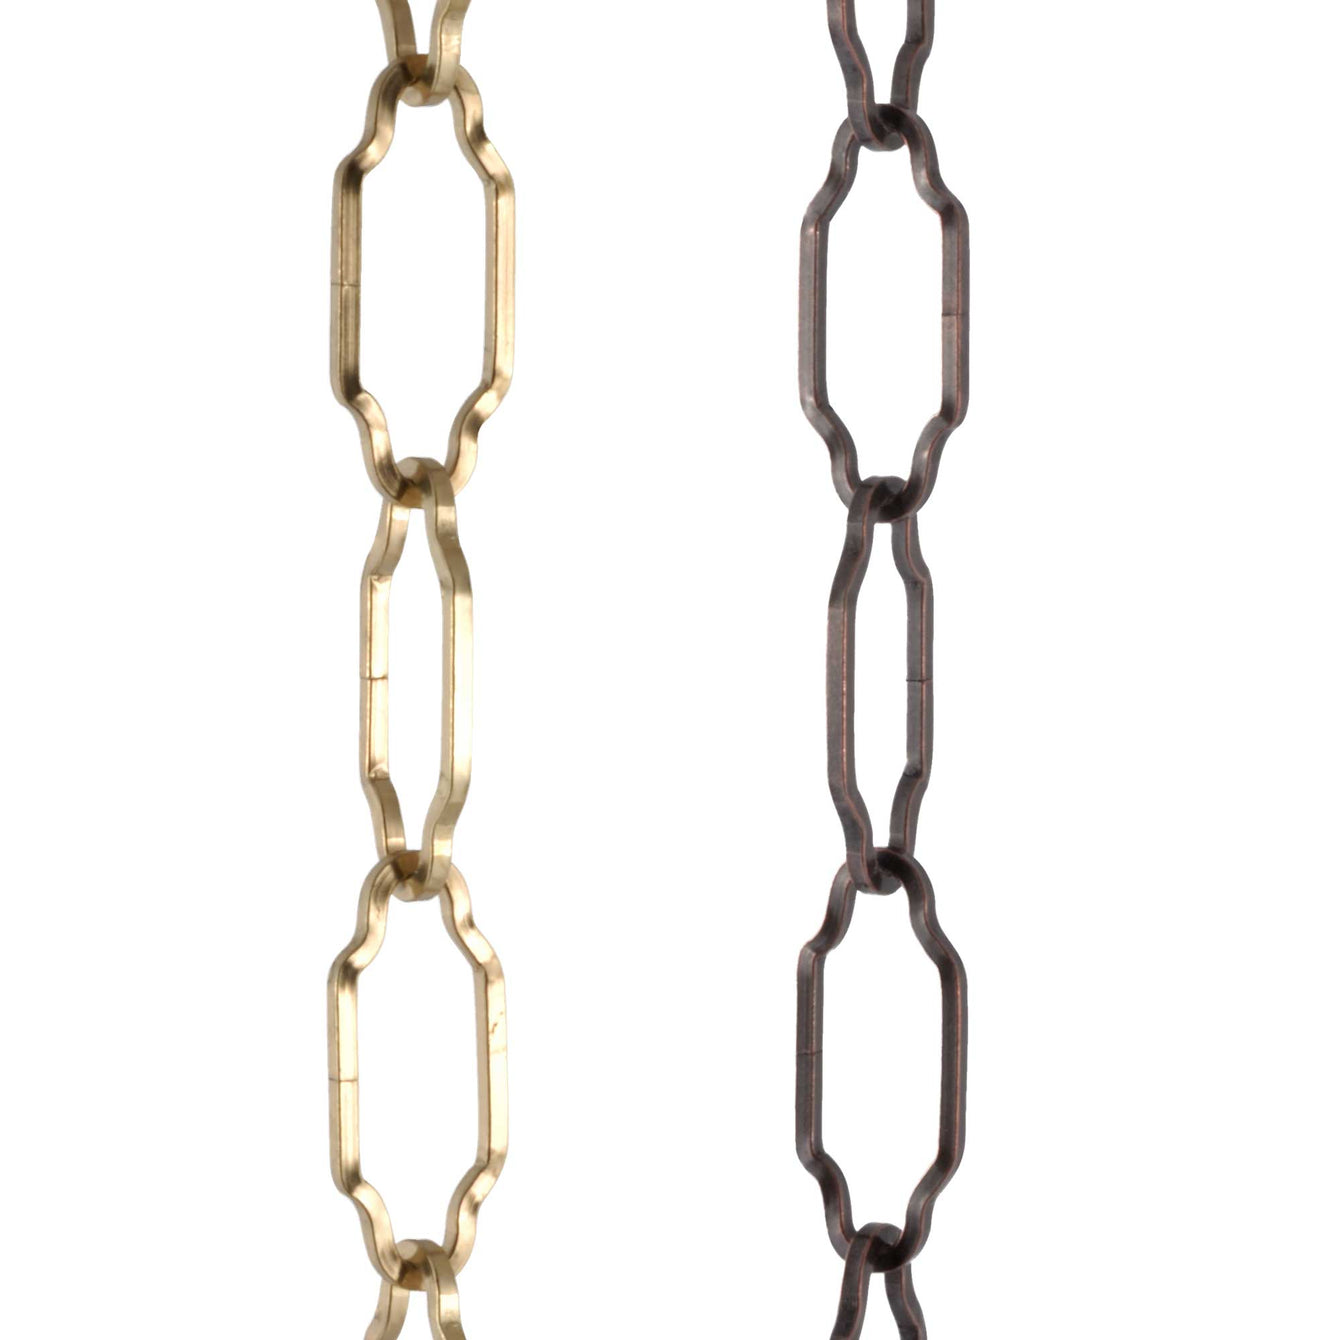 ElekTek Gothic Open Link Chain for Chandelier & Lighting 45mm x 19mm Per Linear Metre - Buy It Better Brass